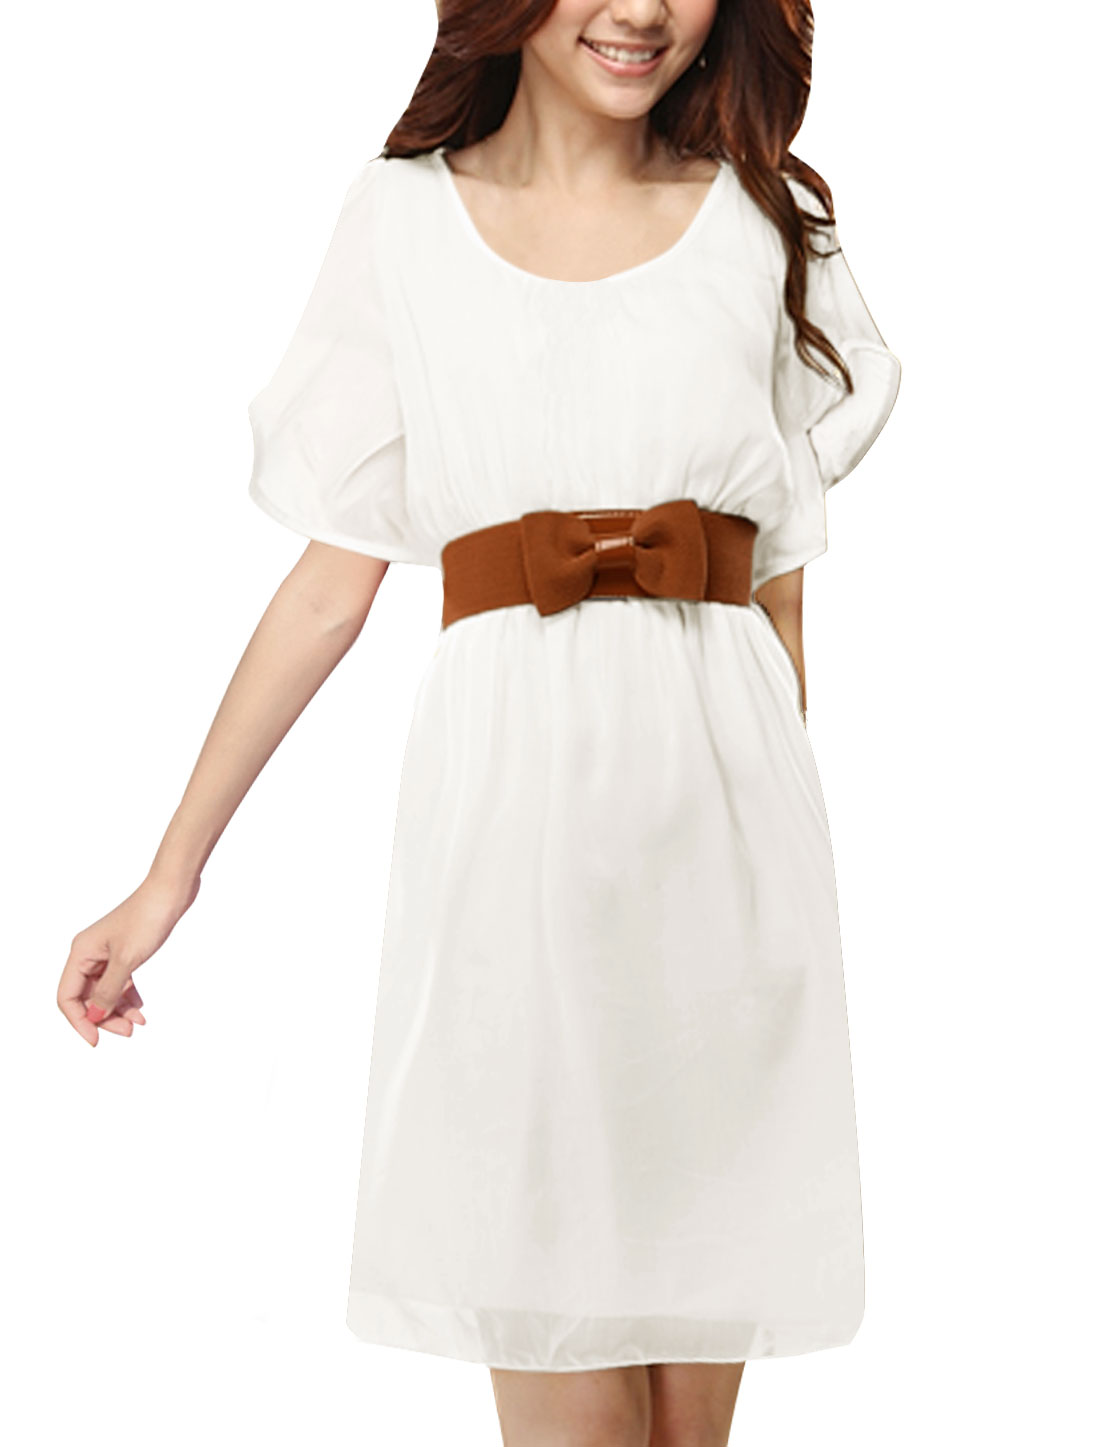 Ladies Pure White Elastic Waist Soft Chiffon Dress w Belt S